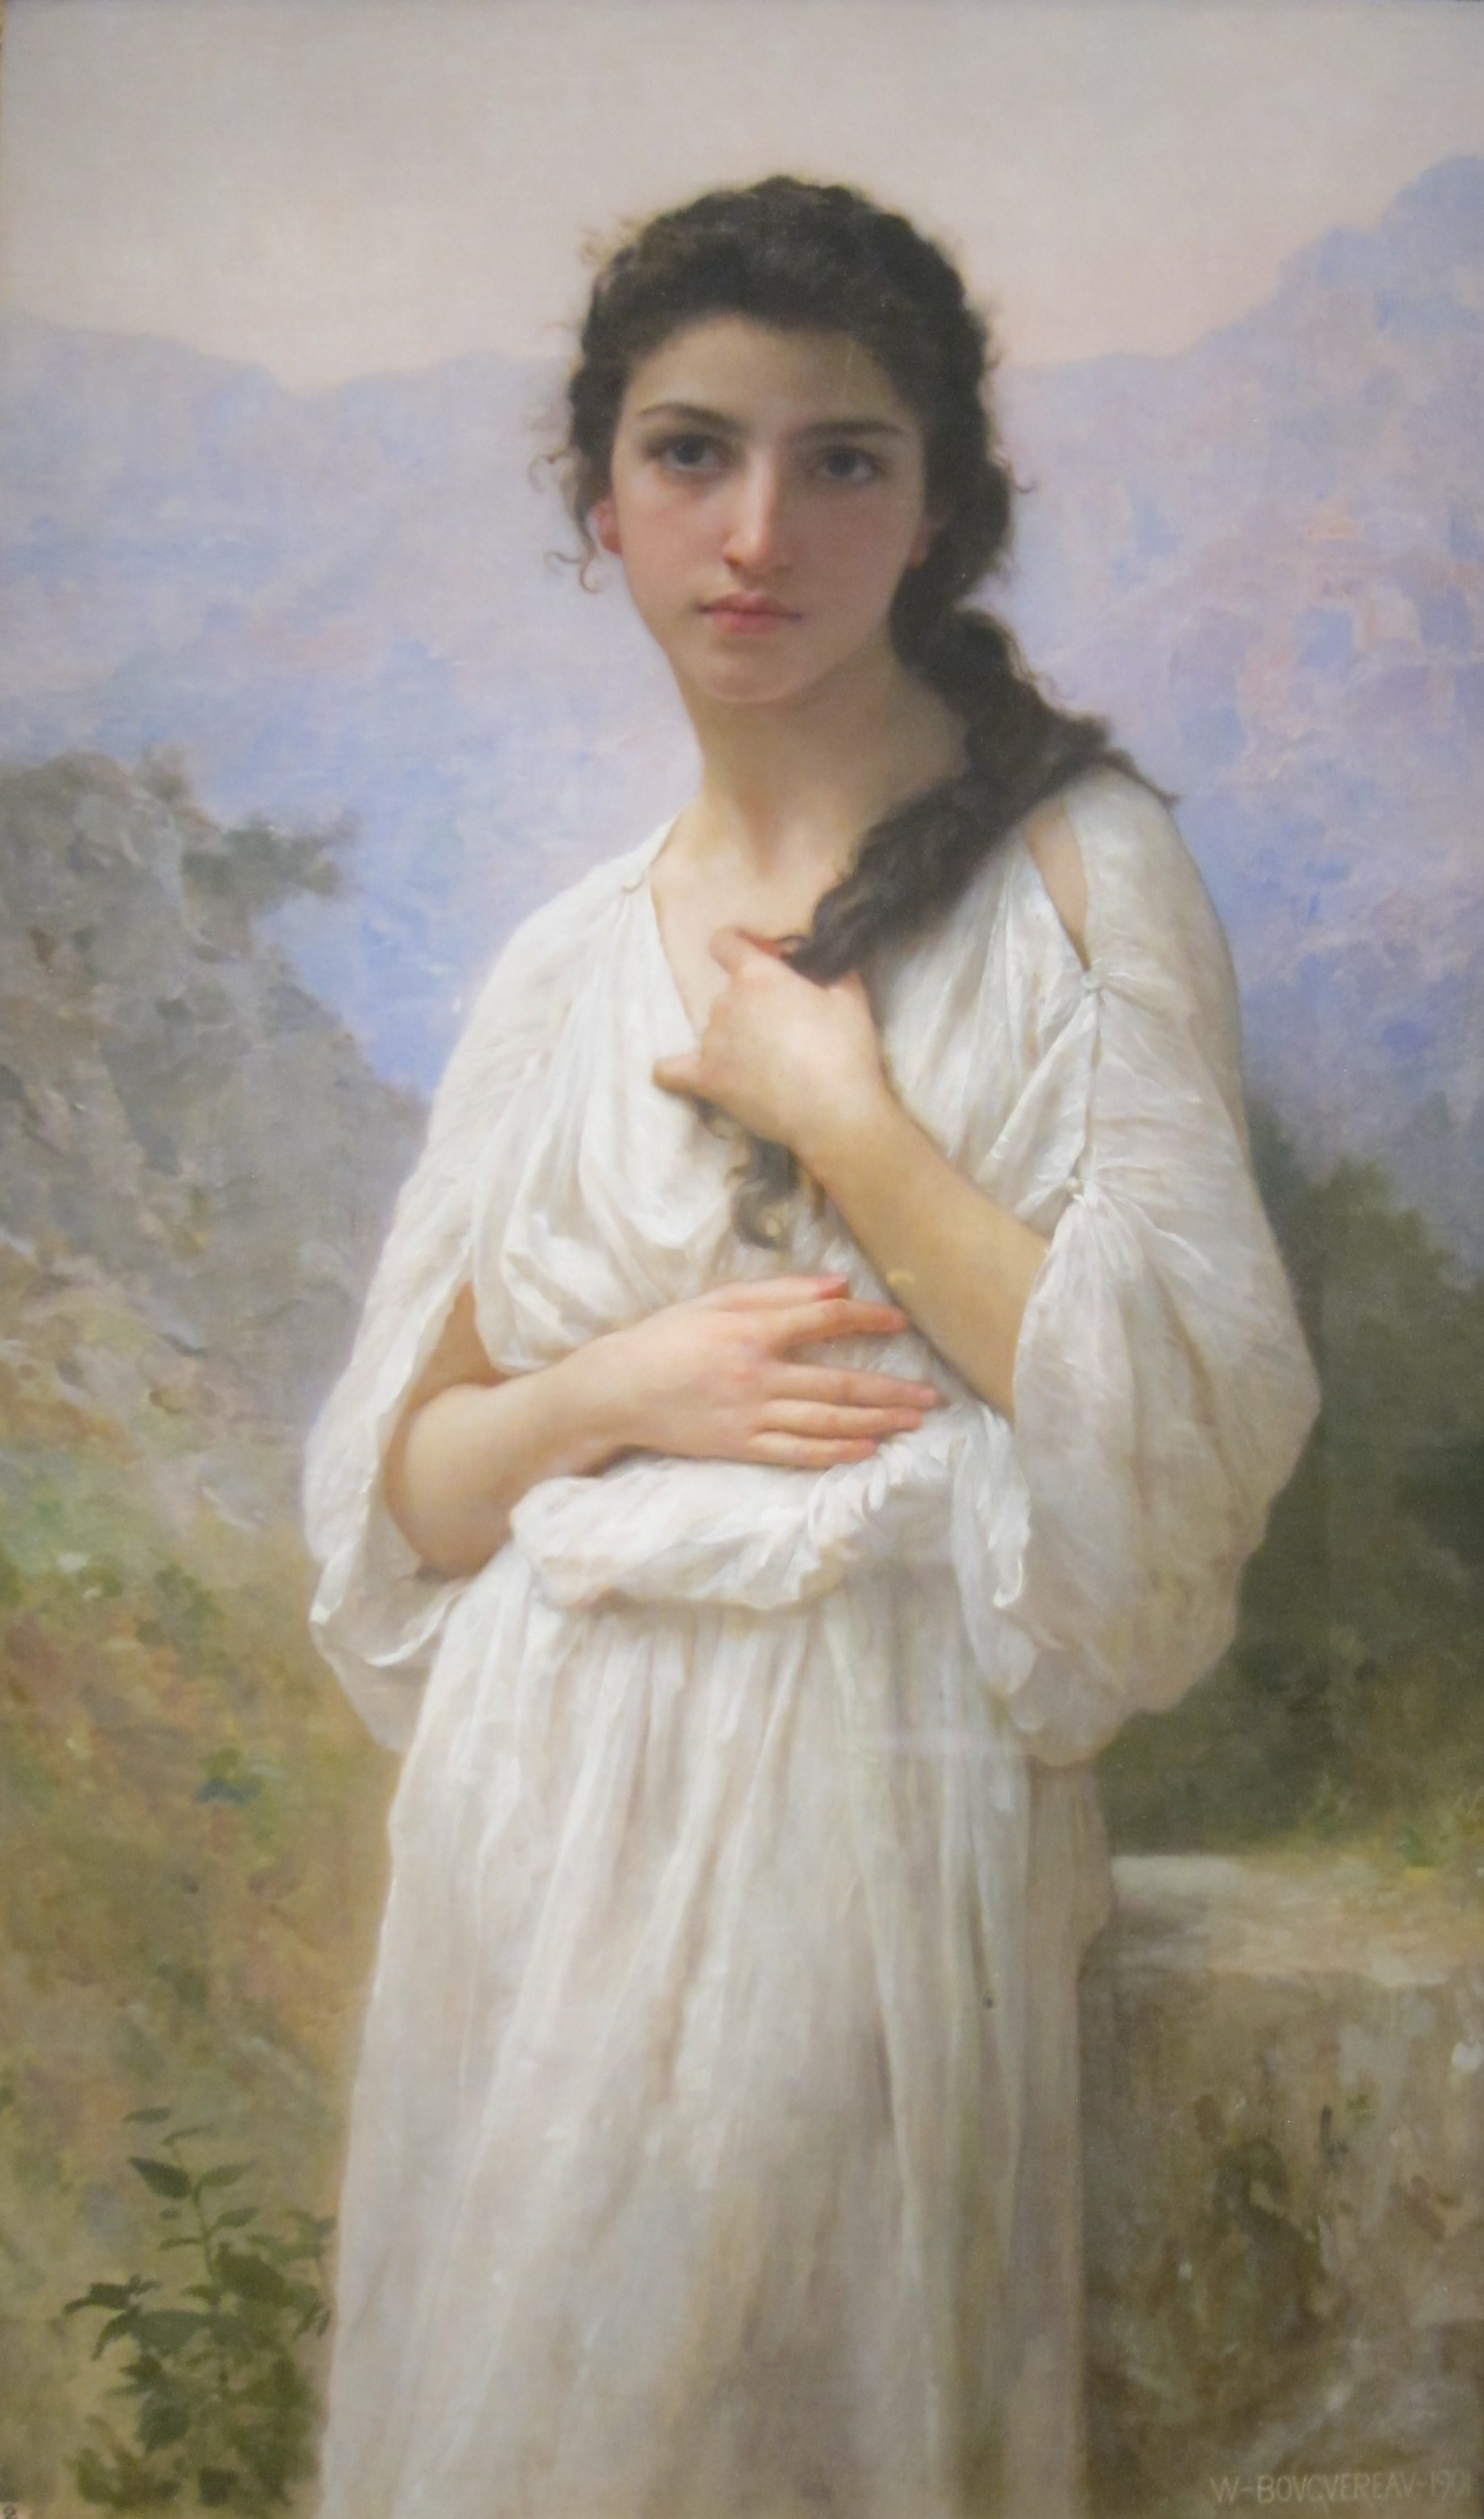 the life and works of william adolphe bouguereau a french painter William-adolphe bouguereau (november 30, 1825 - august 19, 1905) was a french academic painter and traditionalist in his realistic genre paintings he used.